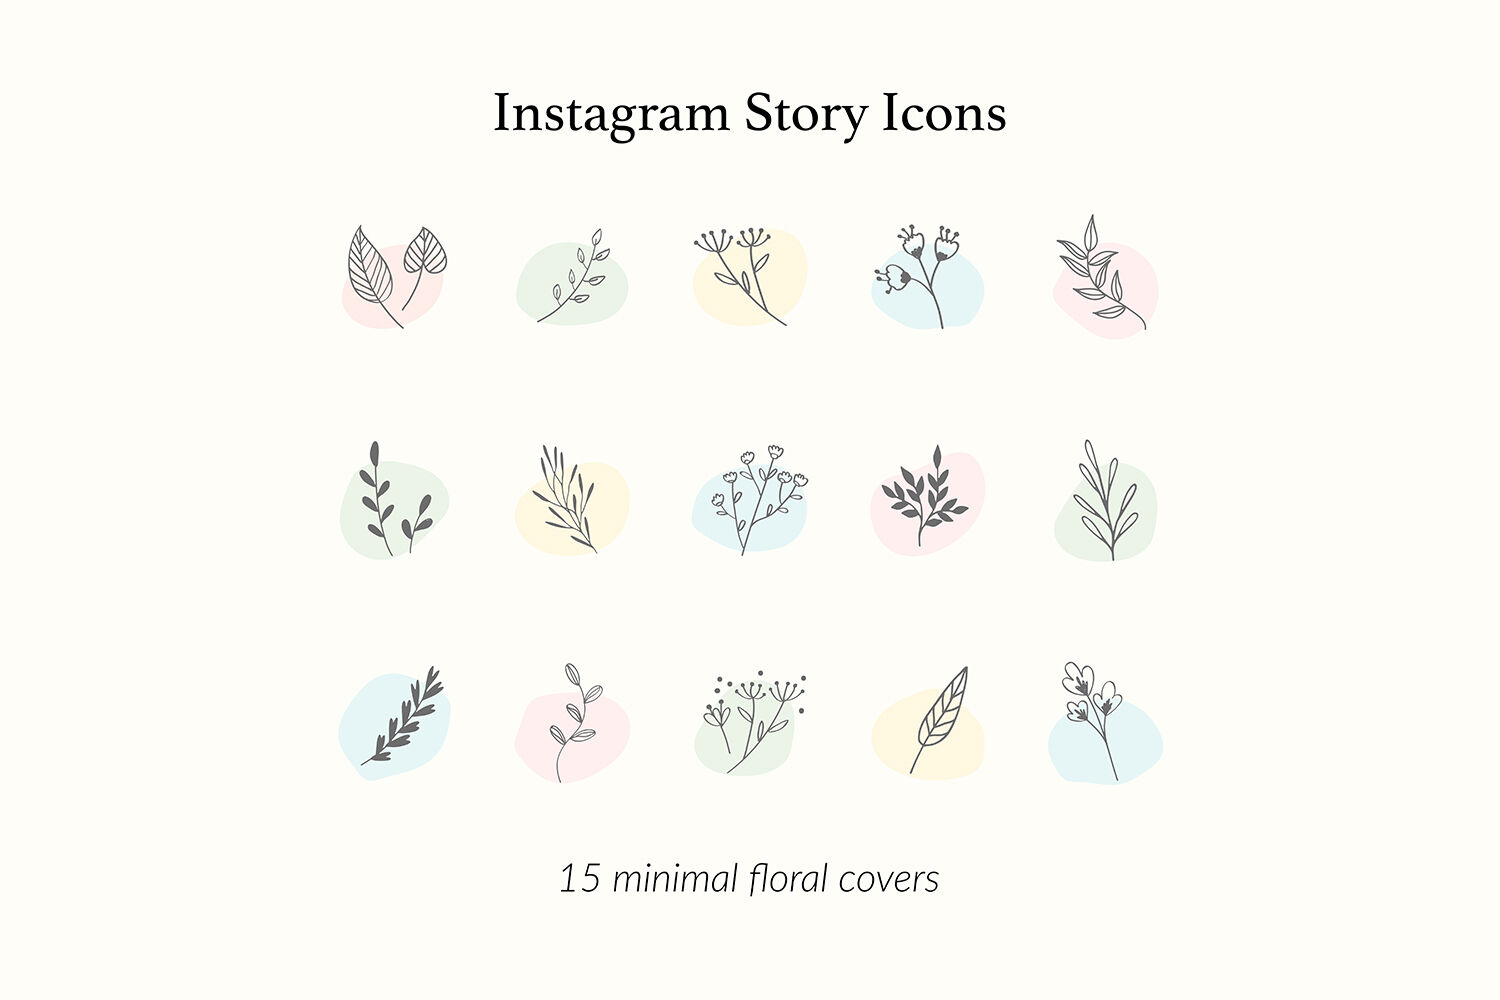 Botanical Instagram Story Icons By North Sea Studio